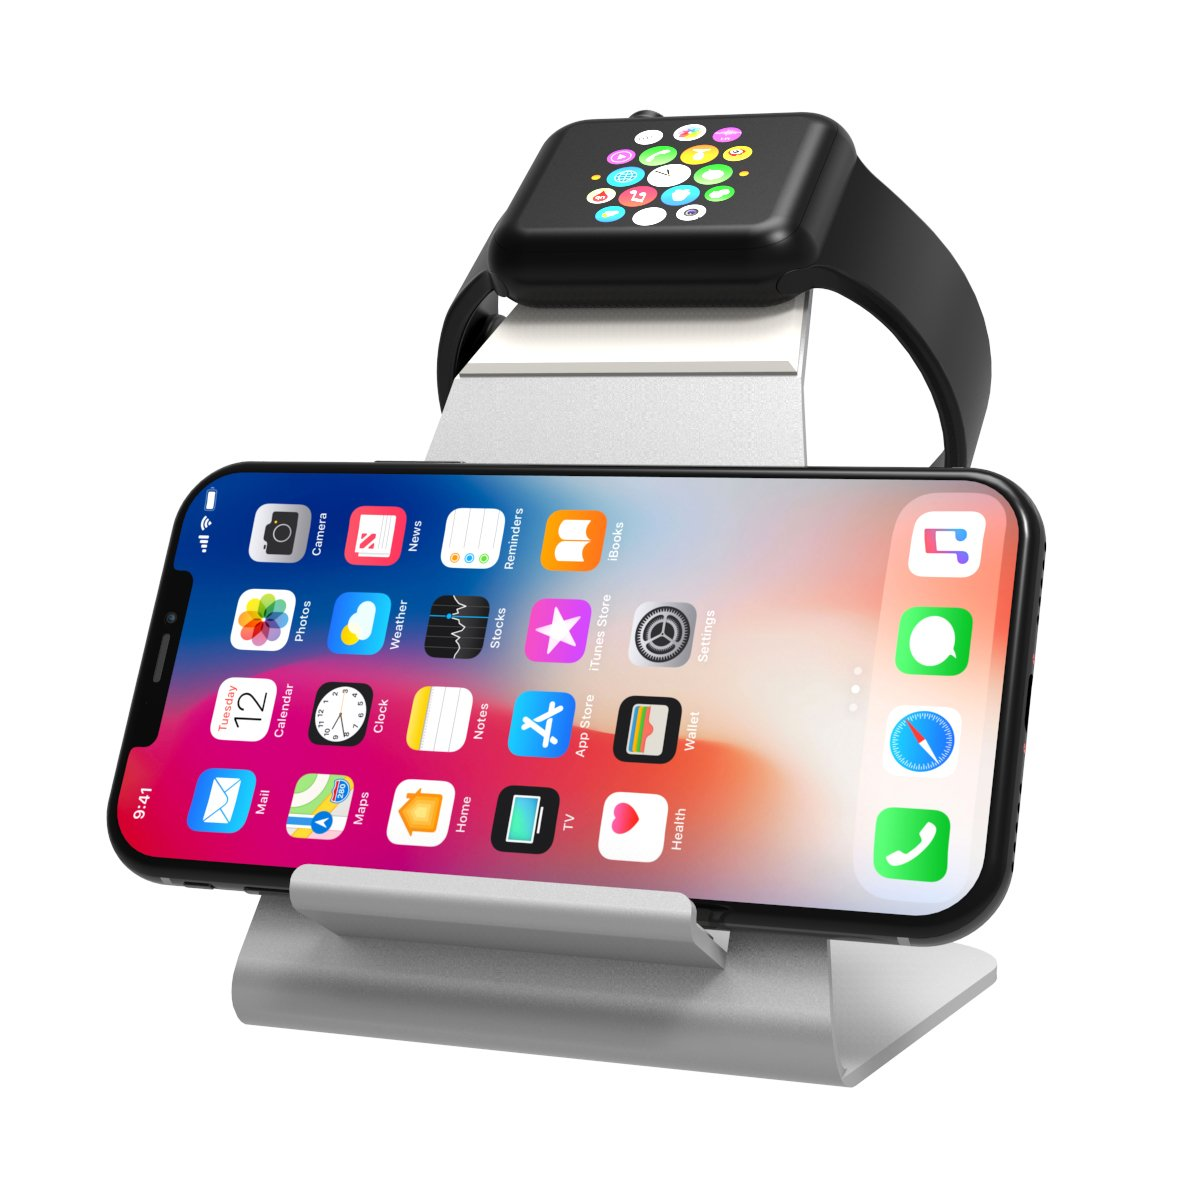 XUNMEJ Watch Stand for Apple Watch Charging Dock Stand Bracket Station Holder for Apple Watch Series 3/Series 2/ Series 1 (42mm 38mm) iPhone X 8 8plus 7 7plus 6S 6plus (Sliver) by XUNMEJ (Image #1)